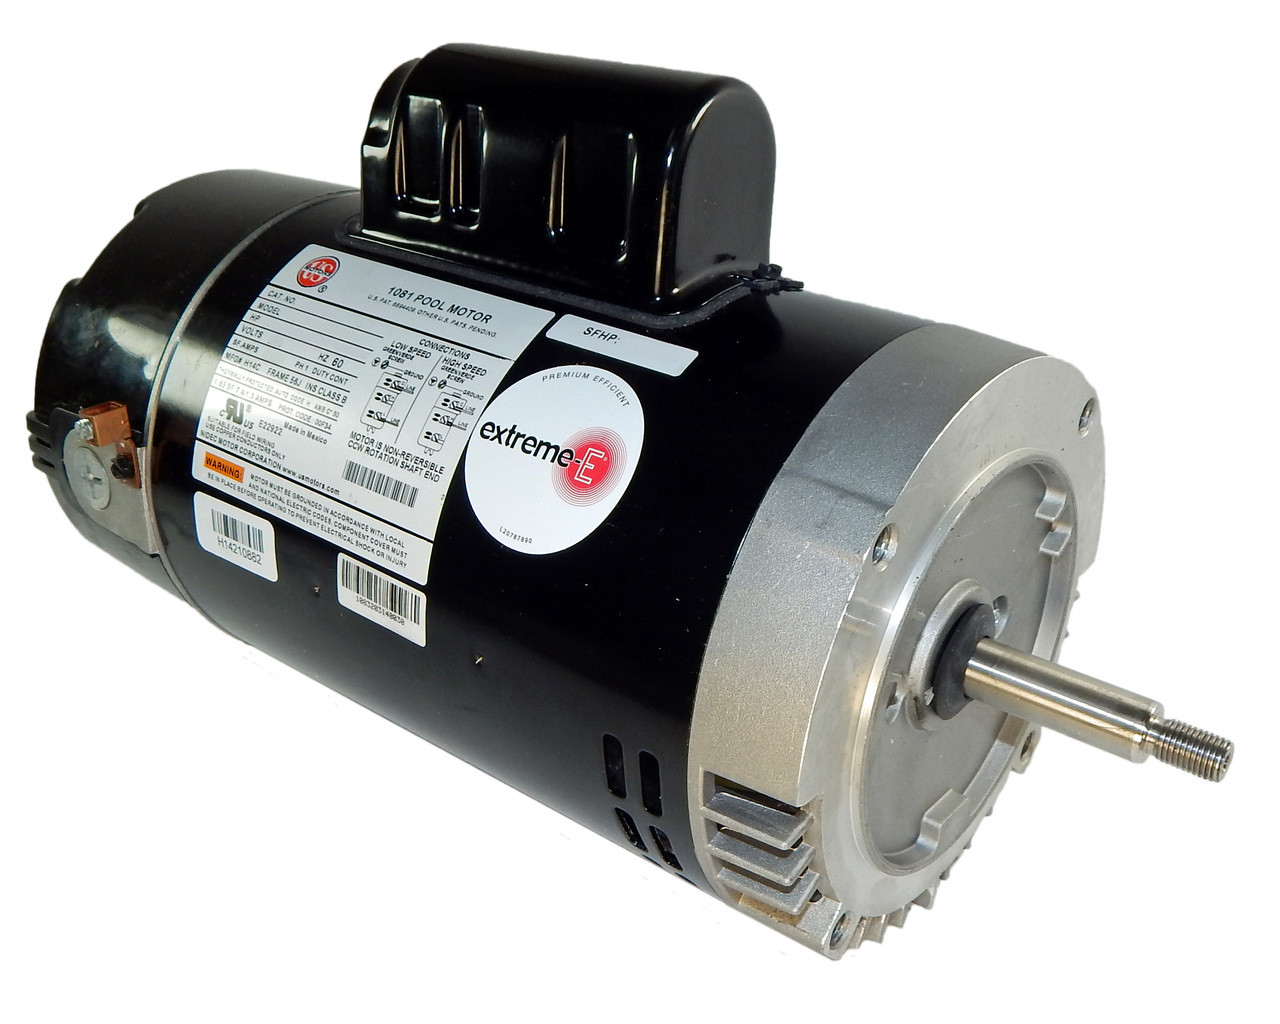 1 5 hp 2 speed 56j frame 230v 2 speed swimming pool motor us electric motor asb2977 [ 1280 x 1024 Pixel ]